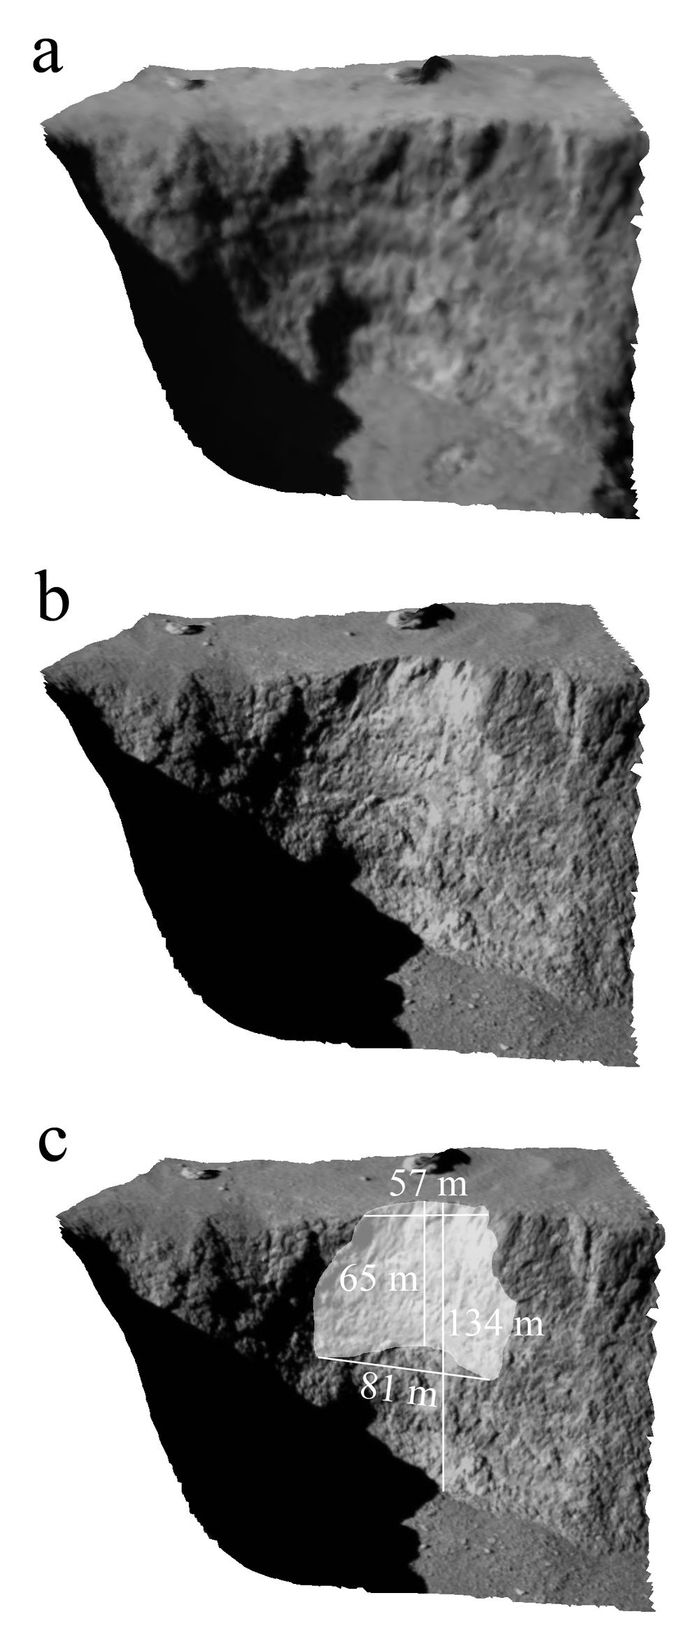 A set of images that illustrate the Aswan cliff before and after the landslide.